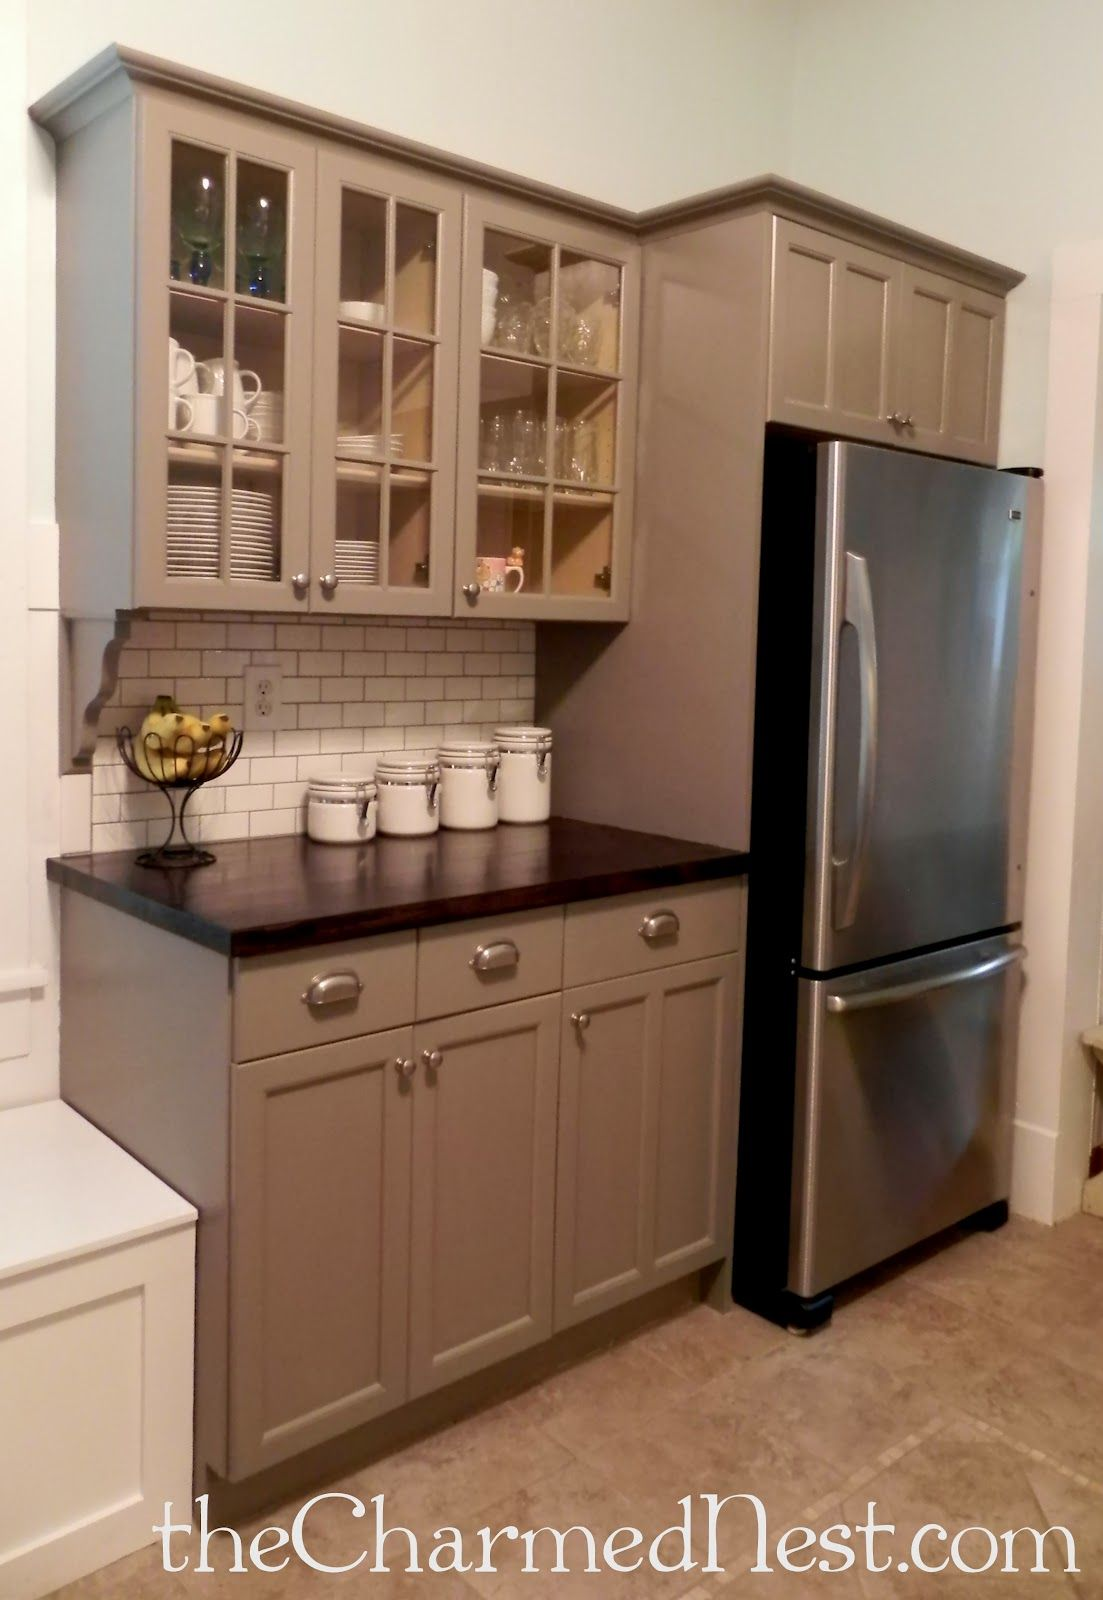 Cabinets painted with Annie Sloan Chalk Paint in French Linen ...